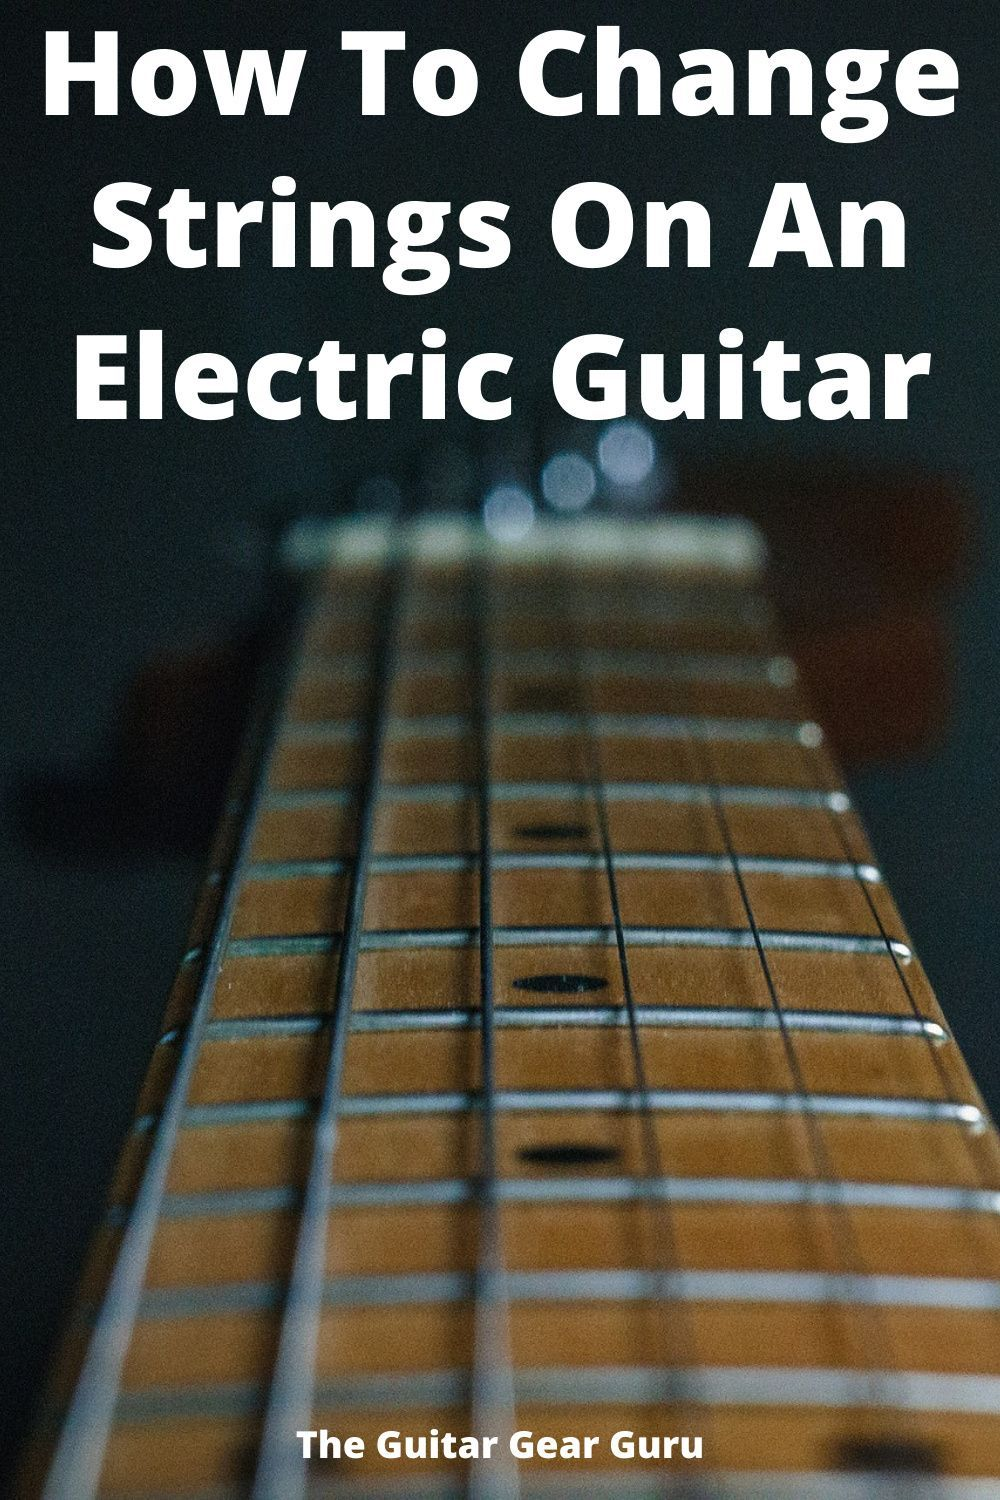 How To Change Strings On An Electric Guitar In 2020 Guitar Scales Electric Guitar Electric Guitar Strings